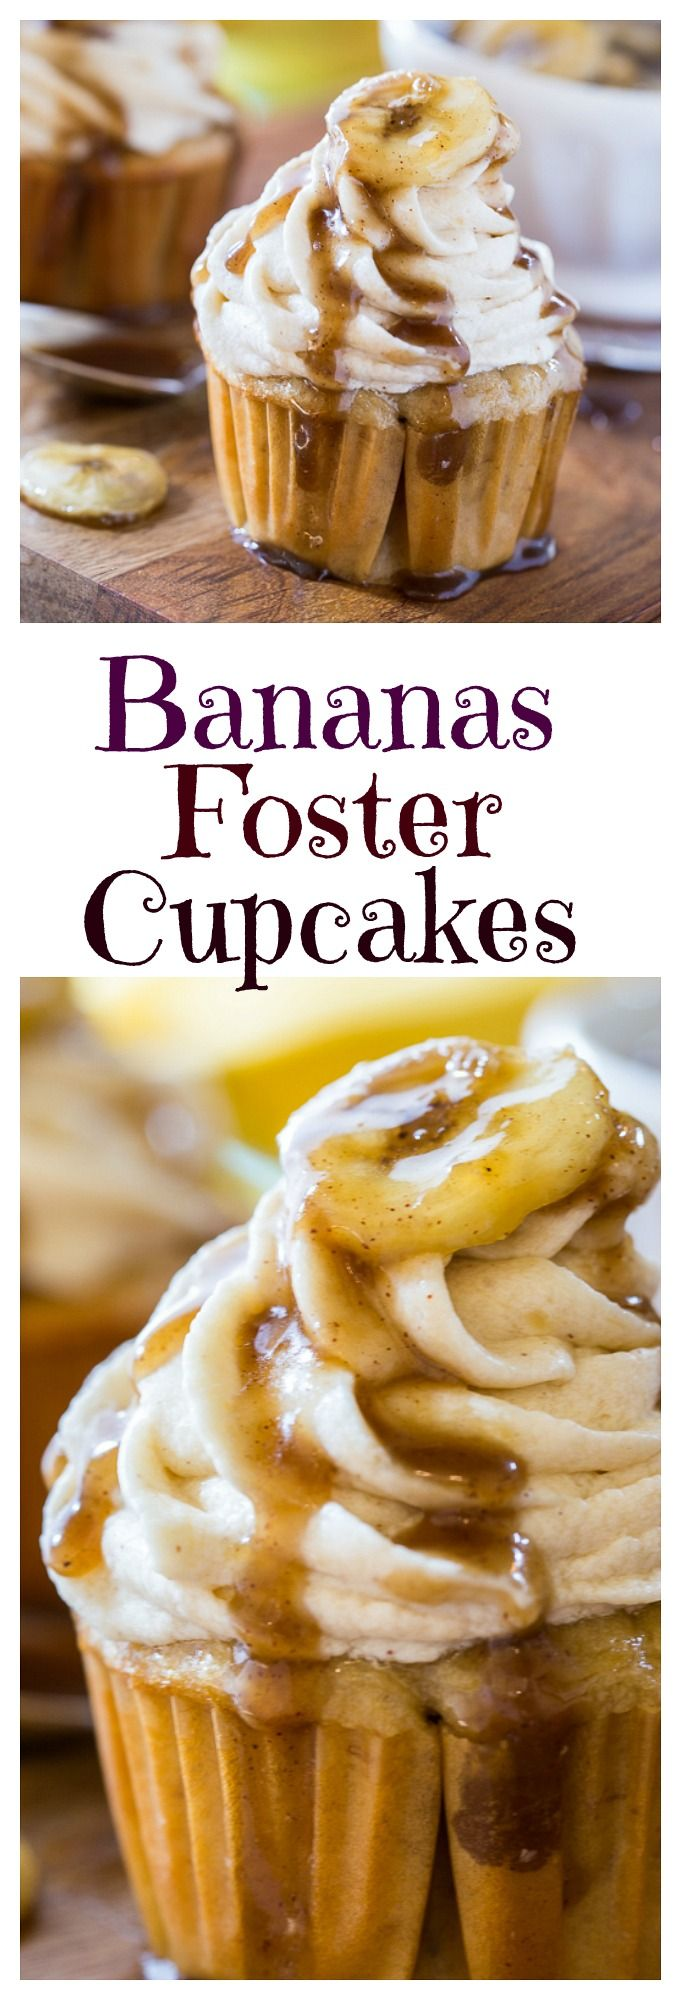 Bananas Foster Cupcakes (sweets & desserts) looks delectable.